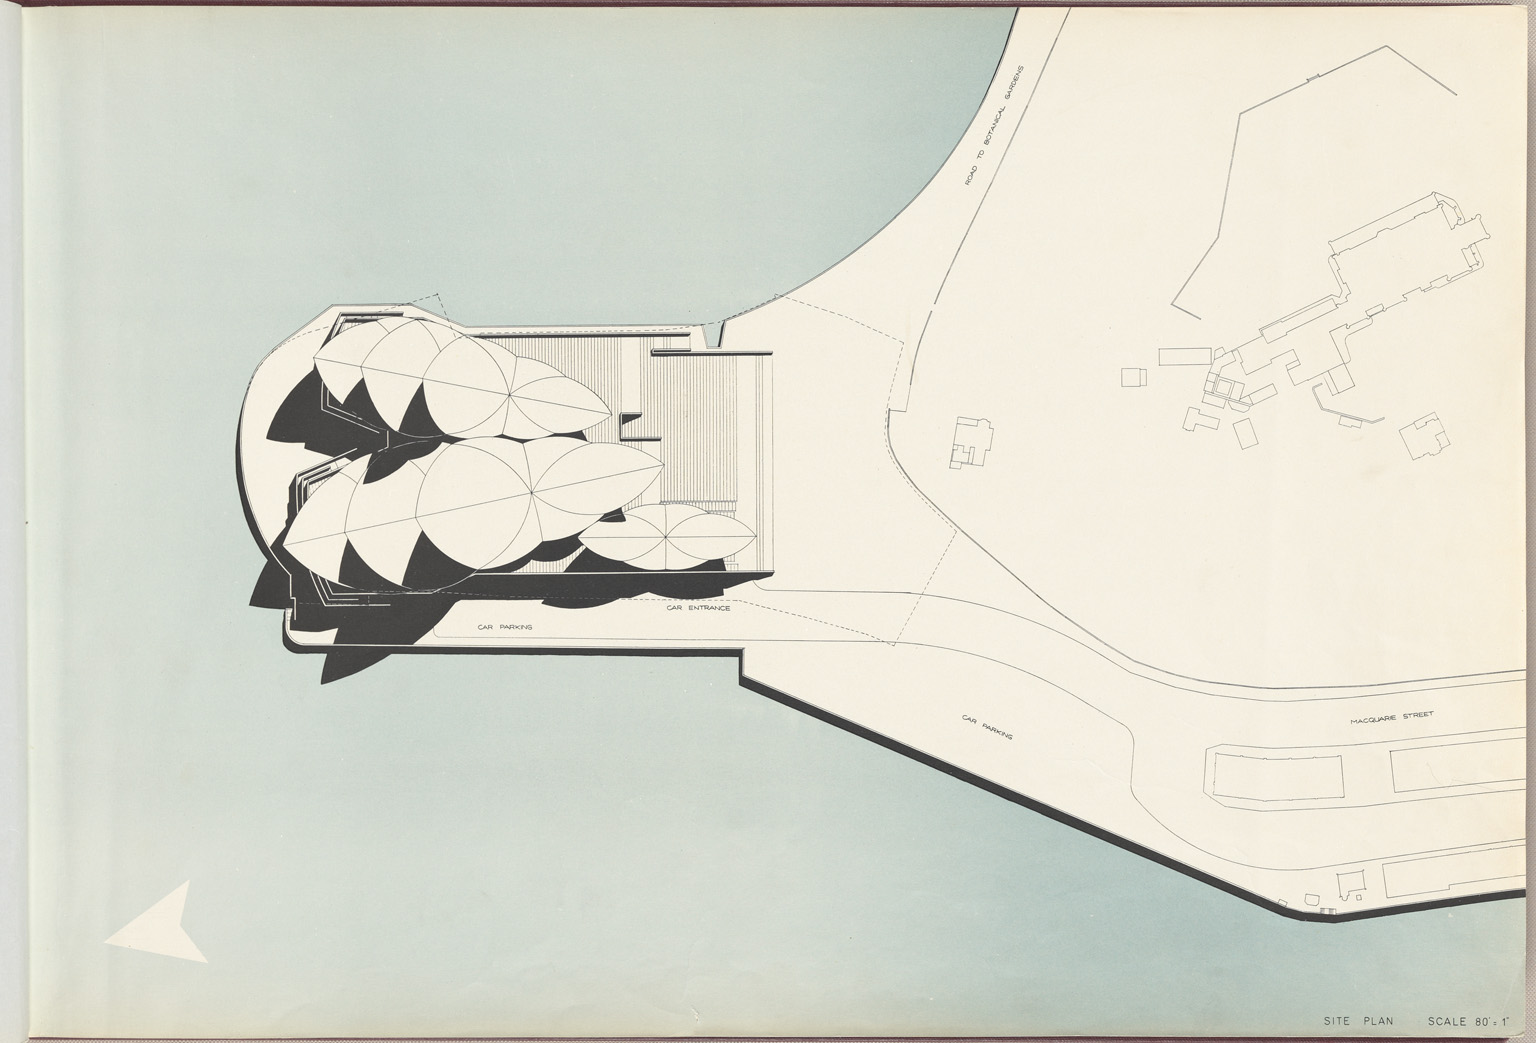 Site plan Sydney Opera House. From the Red Book, 1 Mar 1958. Digital ID